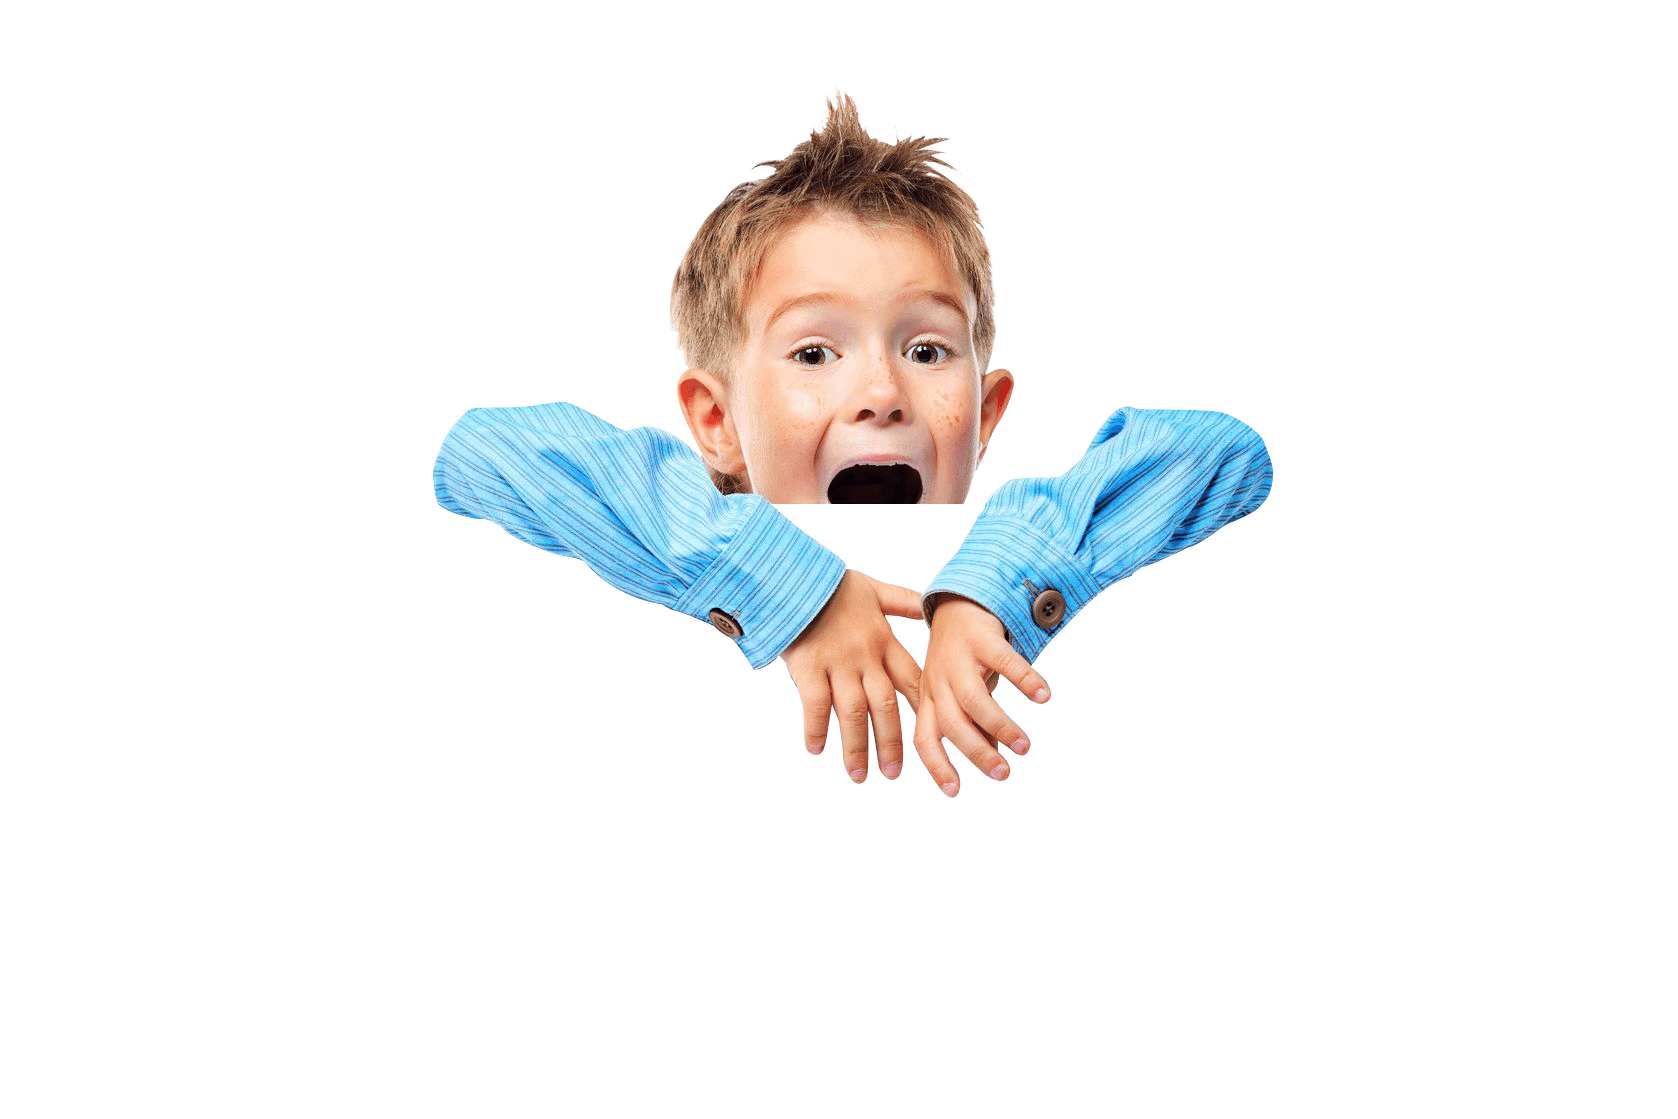 Child PNG PlusPng.com  - Kids Smiling PNG HD